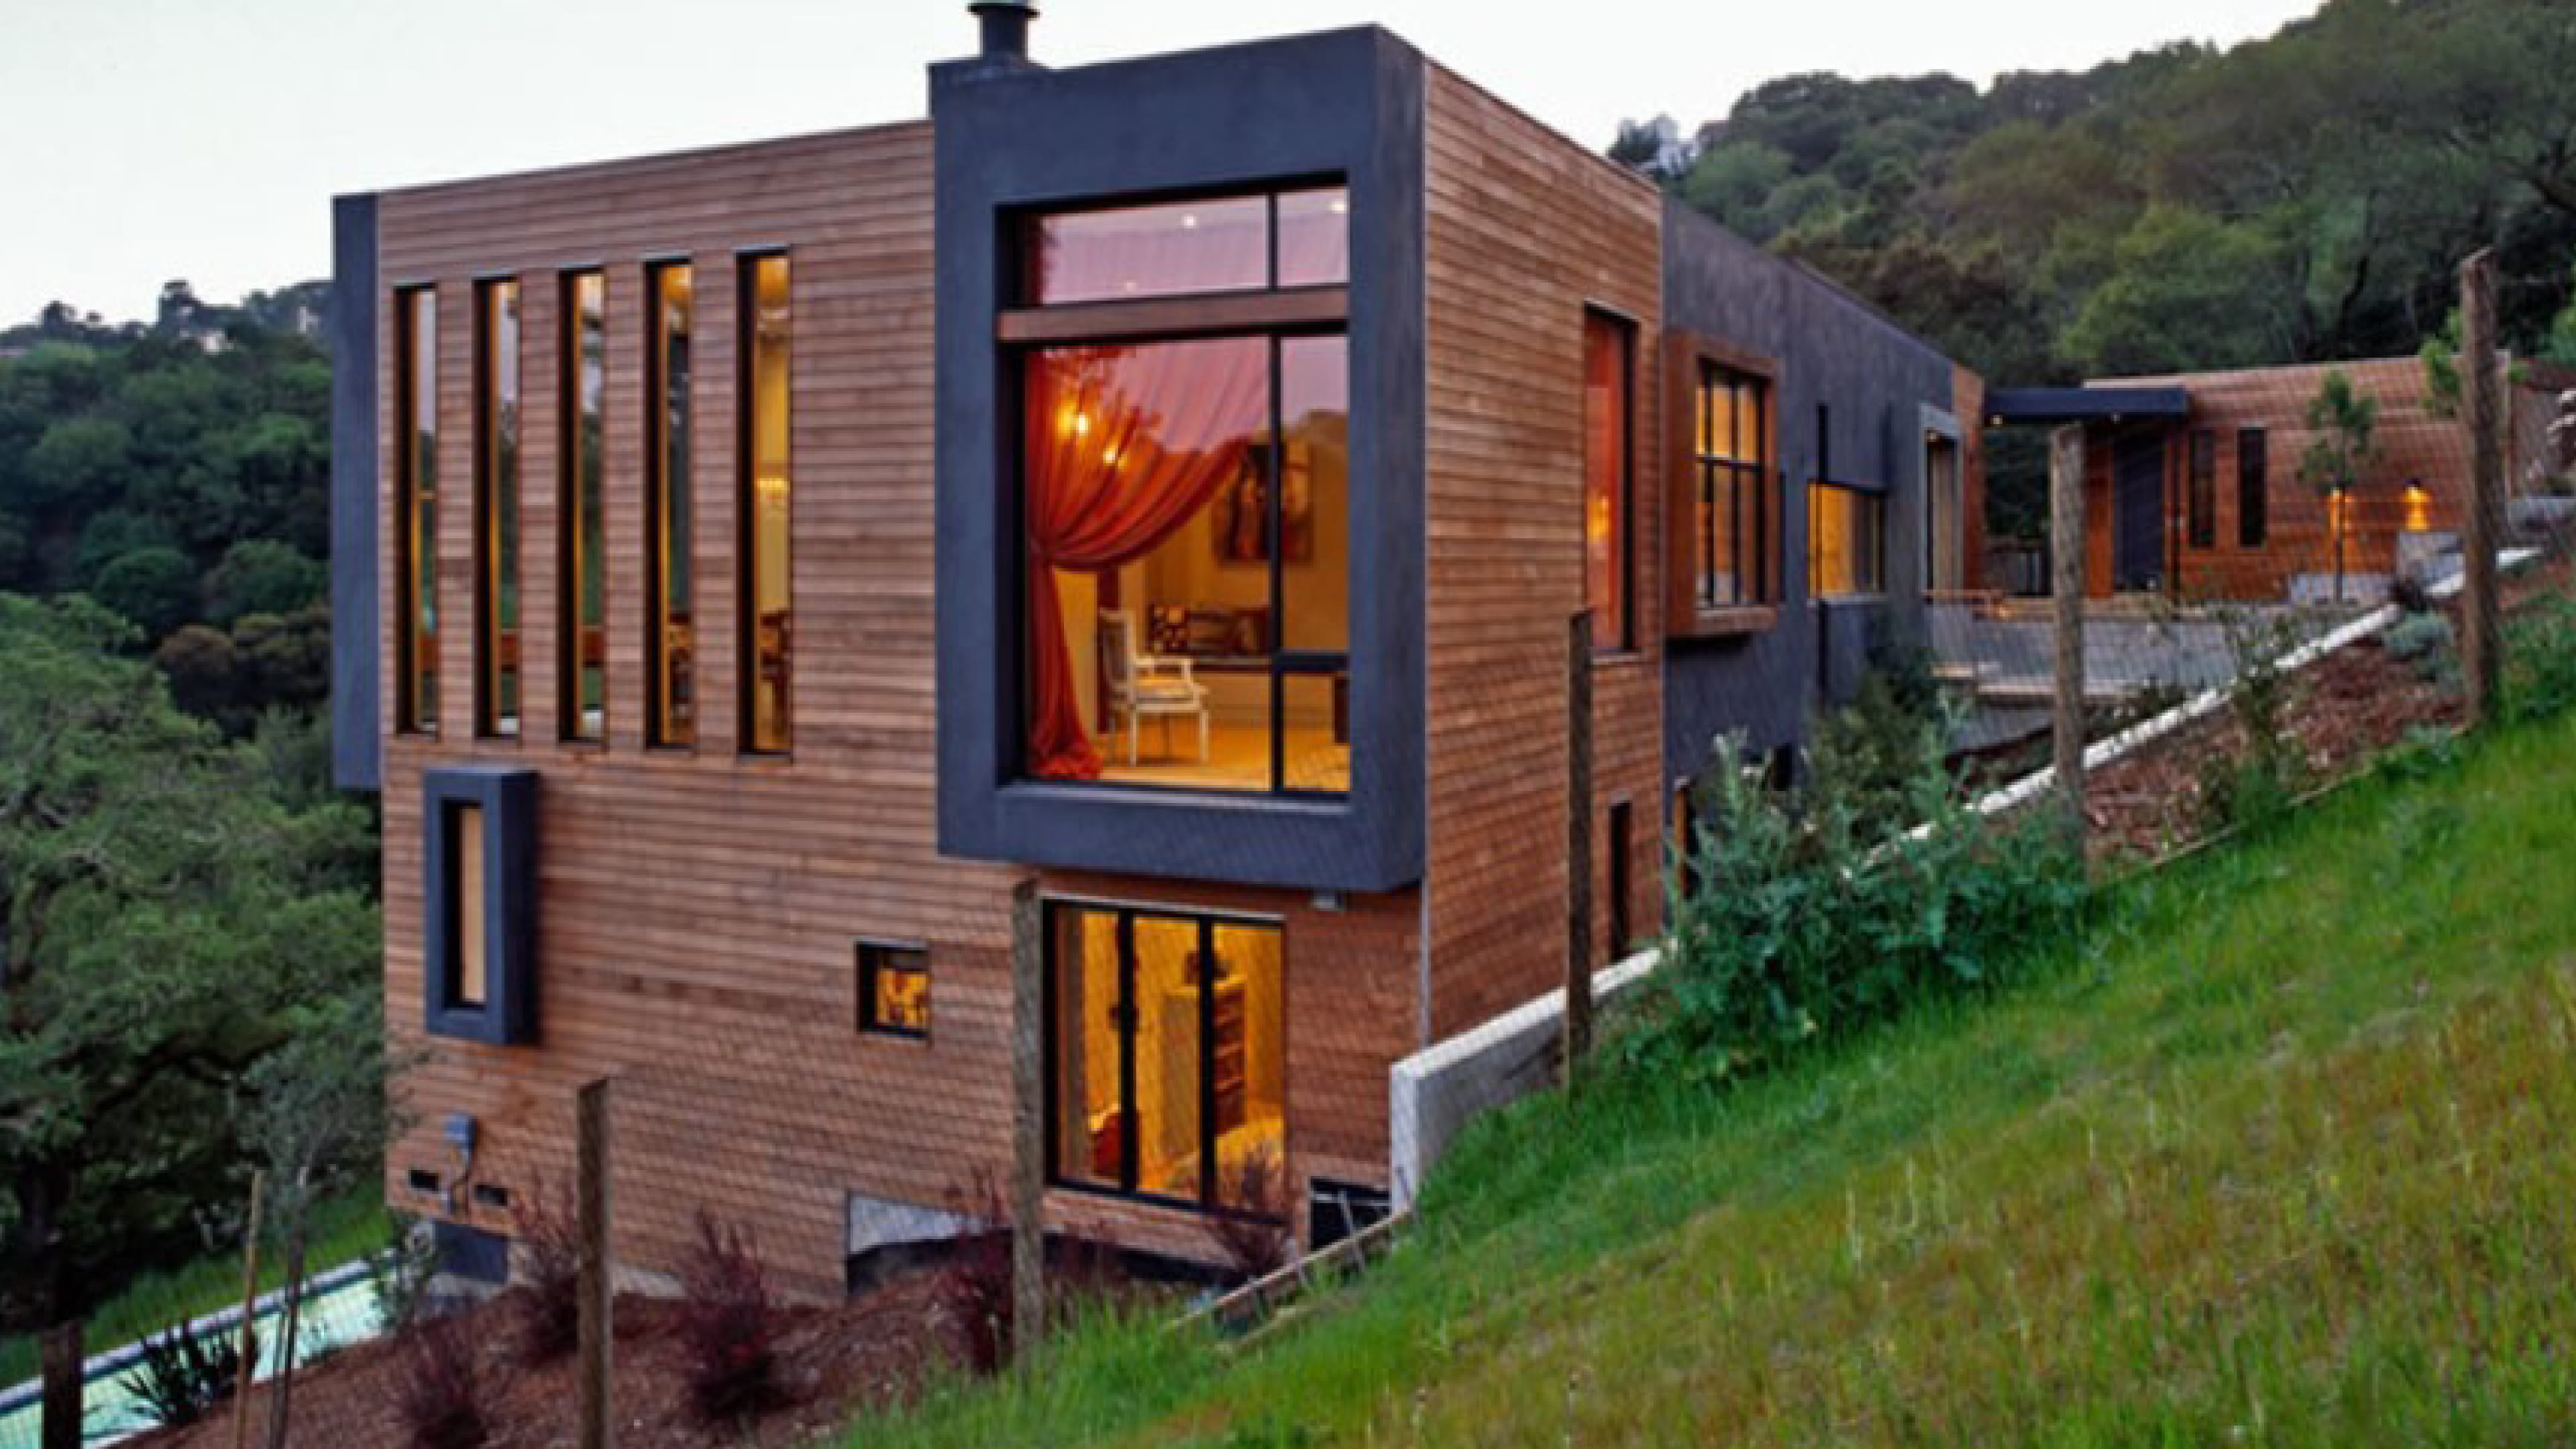 sleepy hollow home on a hill with dramatic extended black sills around custom aluminum windows